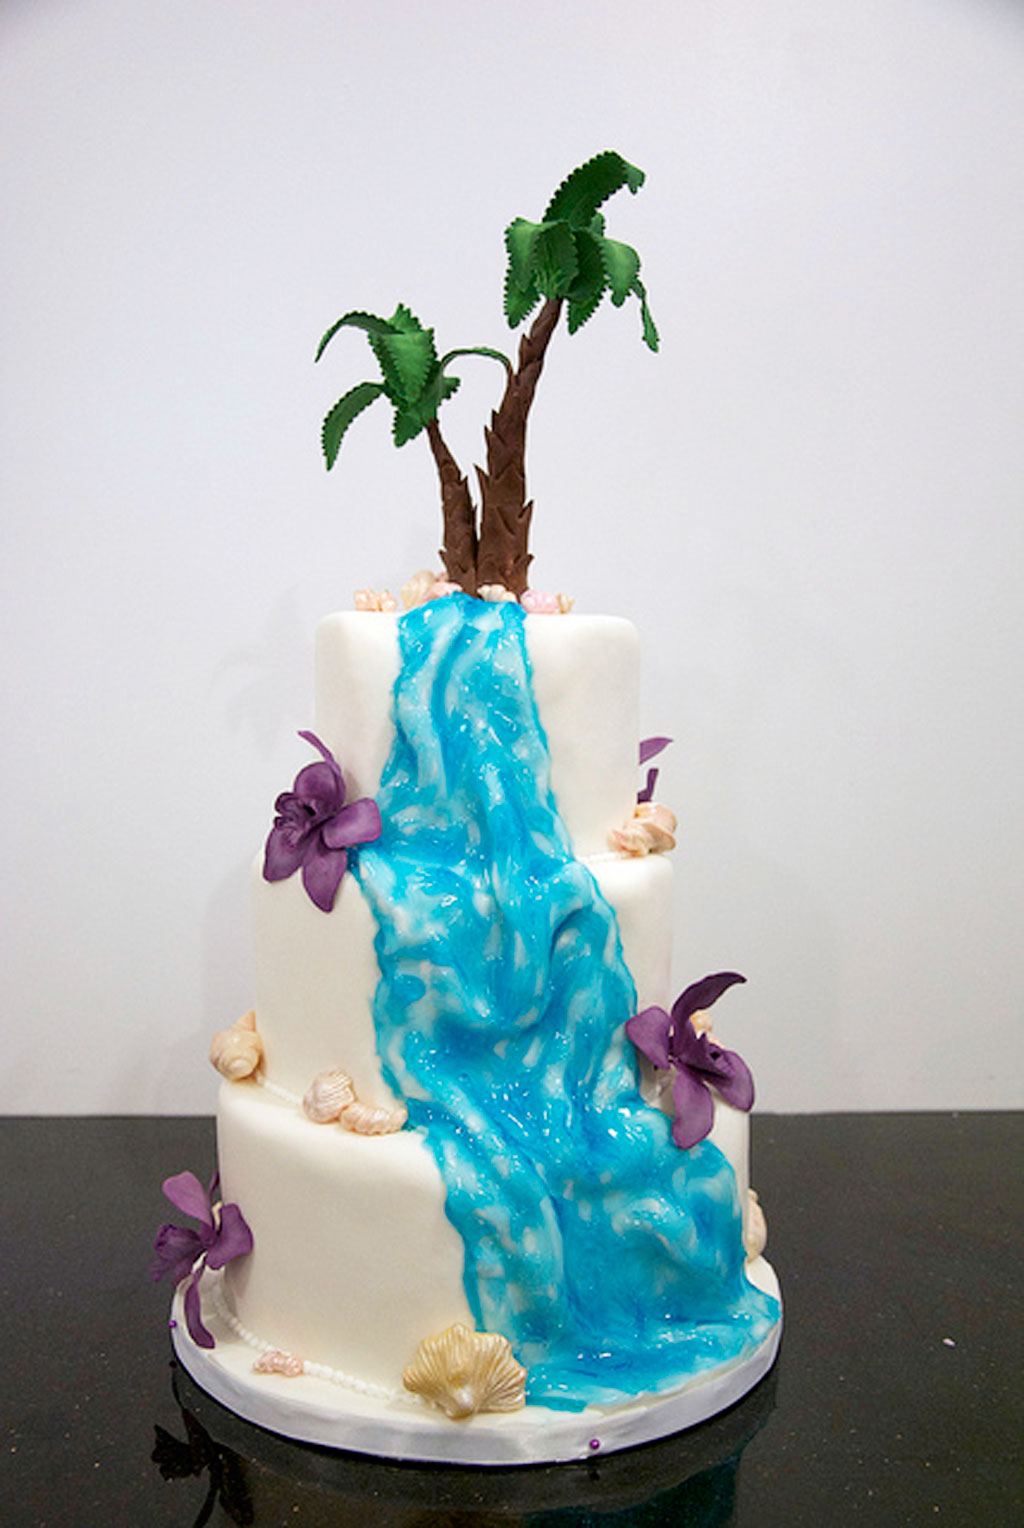 wedding cakes with waterfalls waterfall wedding cakes pictures wedding cake cake ideas 26134